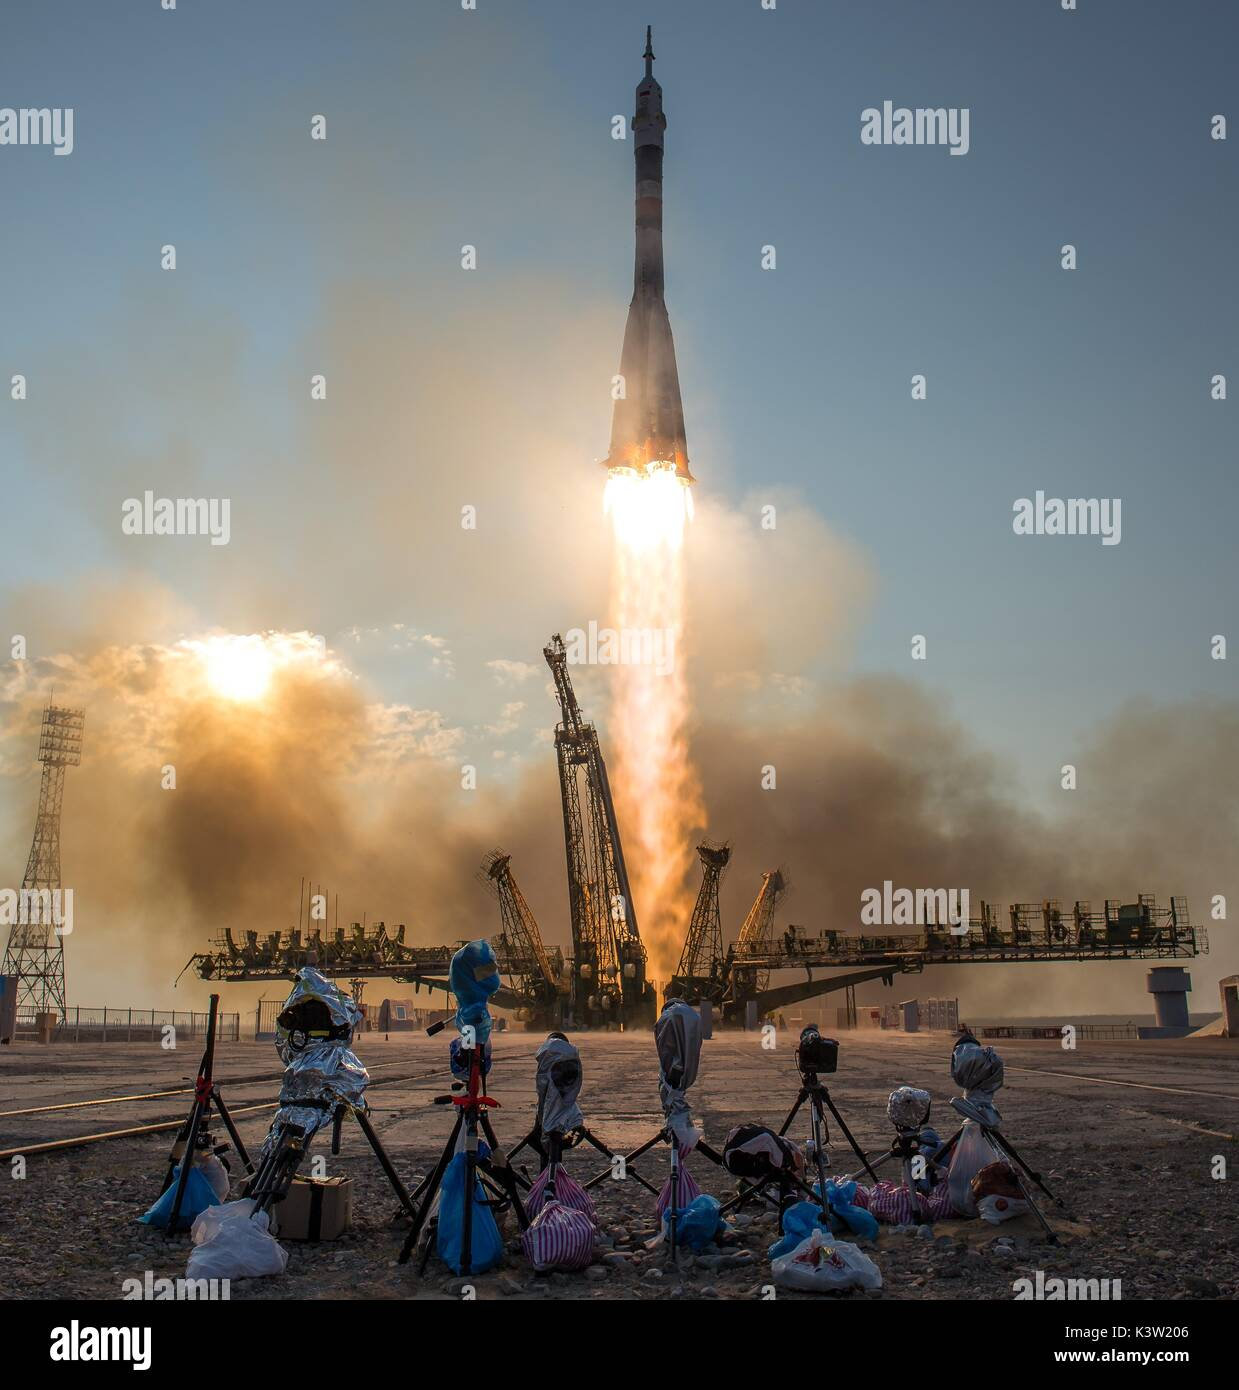 The NASA International Space Station Expedition 48/49 Soyuz MS-01 spacecraft launches from the Baikonur Cosmodrome July 7, 2016 in Baikonur, Kazakhstan.  (photo by Bill Ingalls via Planetpix) - Stock Image